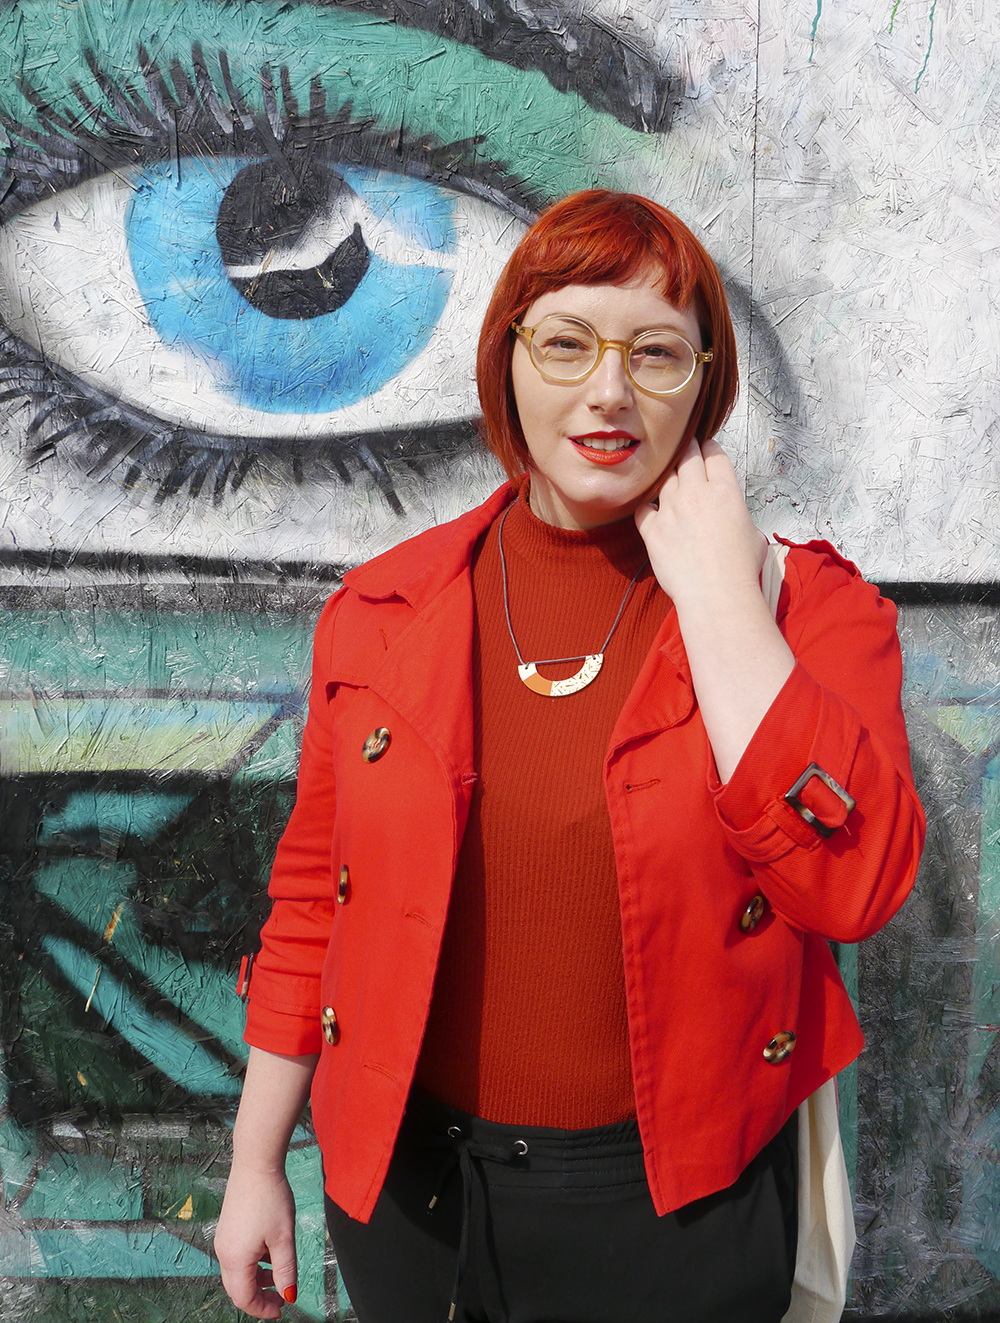 Scottish blogger Helen from Wardrobe Conversations wearing CrossEyes glasses with red and orange outfit